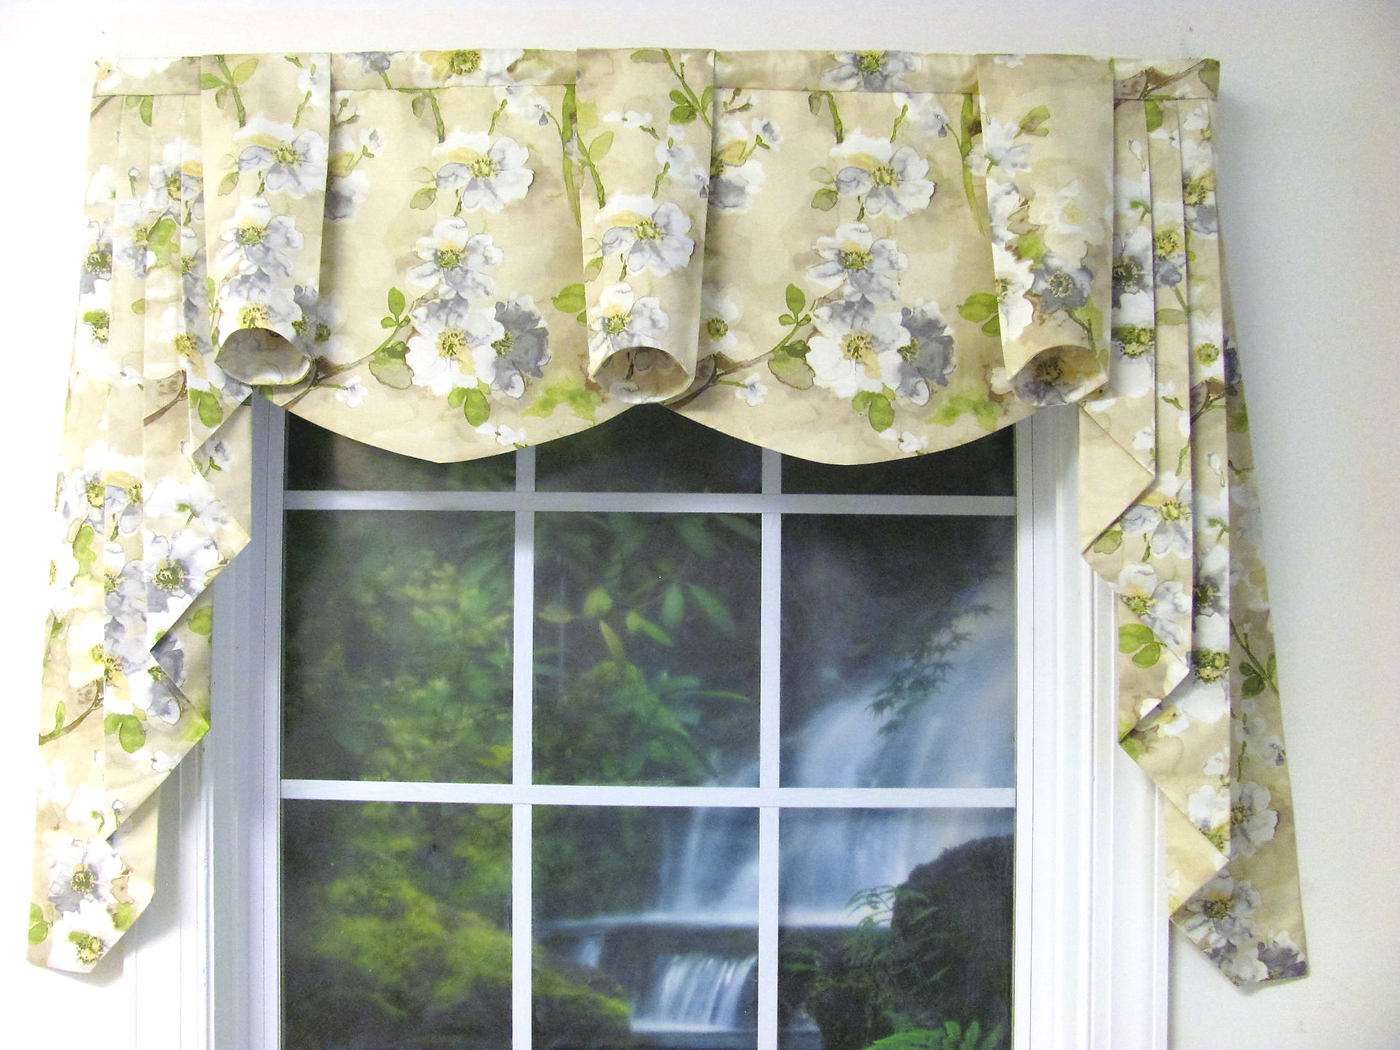 Tree blossom natural regal swooped window valance - Boutique free valence ...